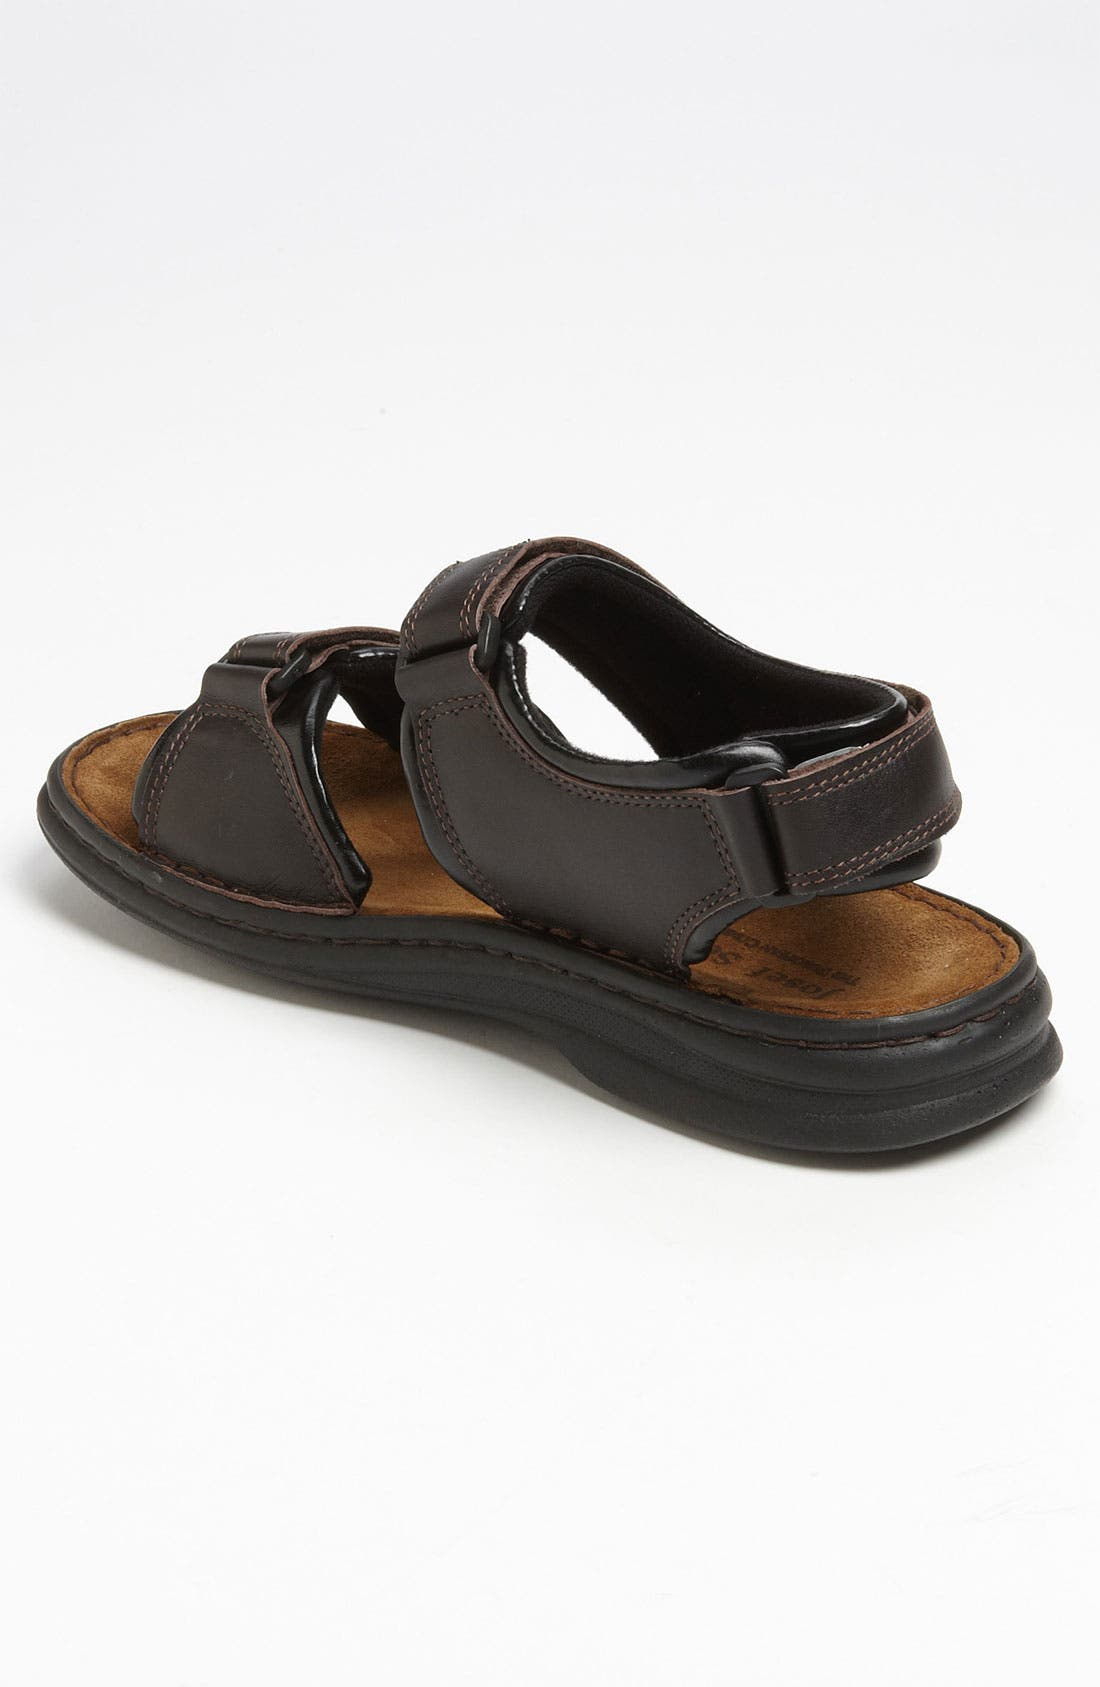 'Rafe' Sandal,                             Alternate thumbnail 2, color,                             Dakota Moro/Black